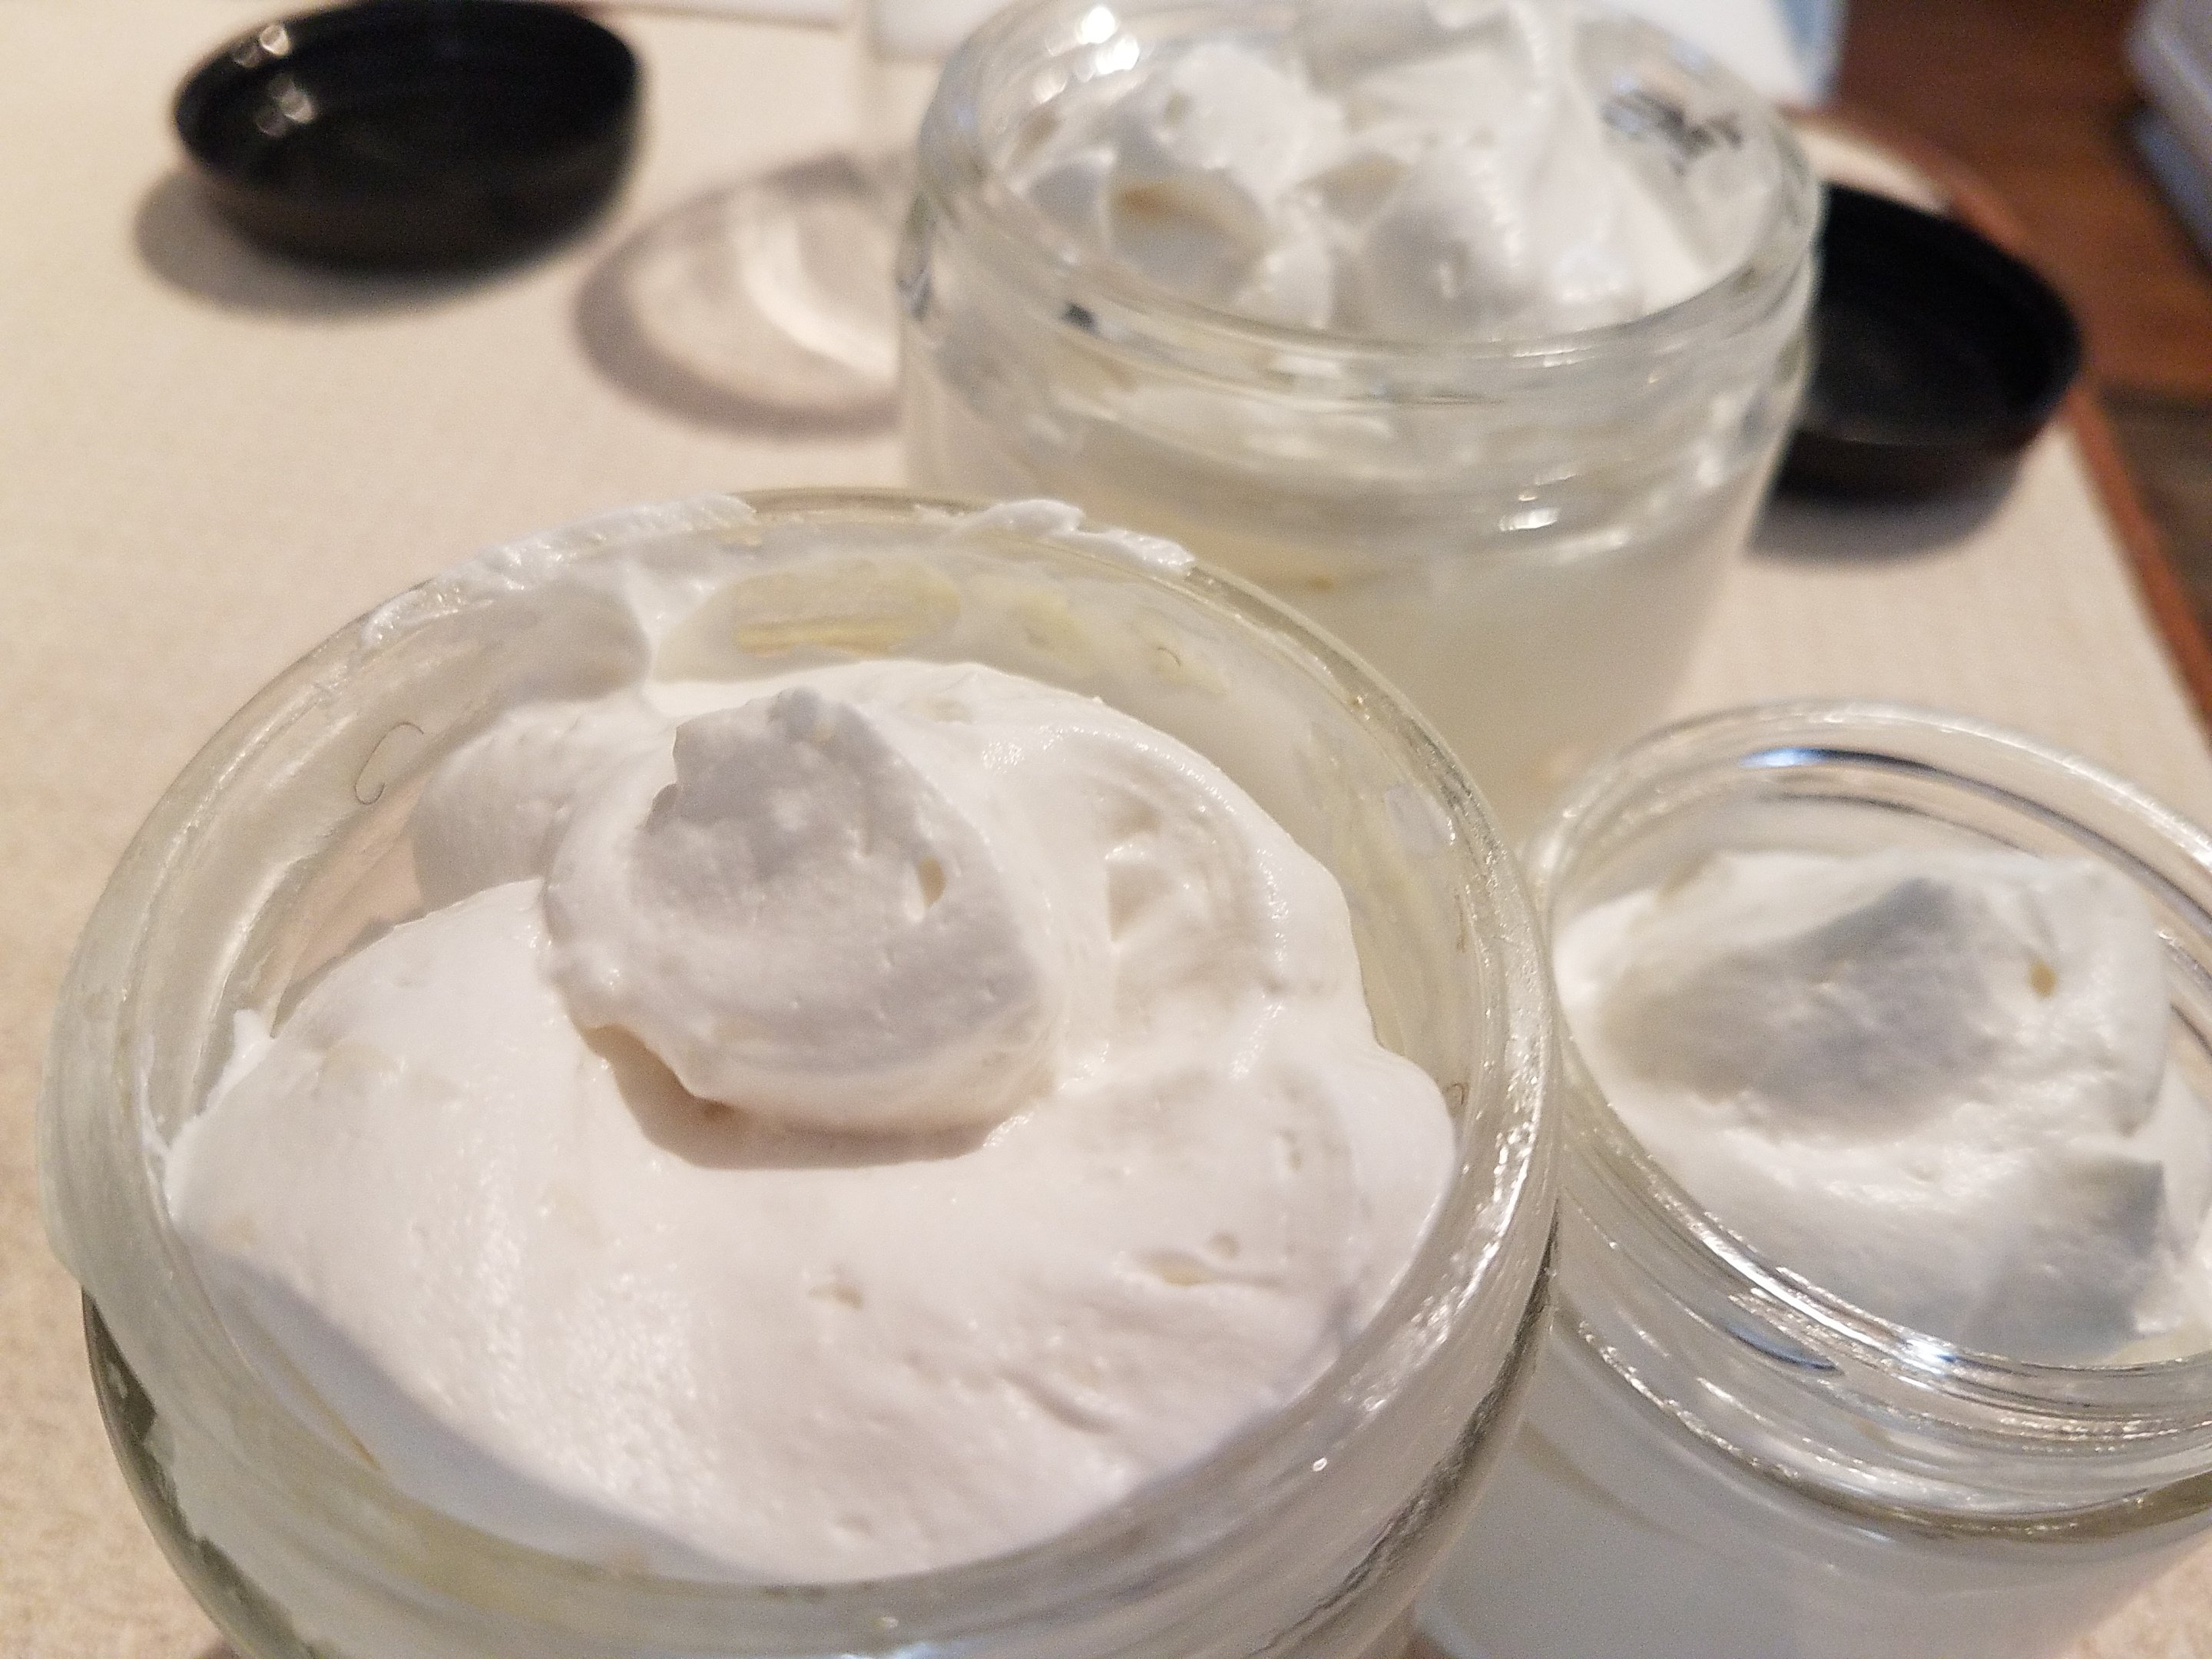 A fresh batch of mango butter/cupuacu butter hair cream, whipped and ready to go (apparently, this is the only product my hair wants or needs.)